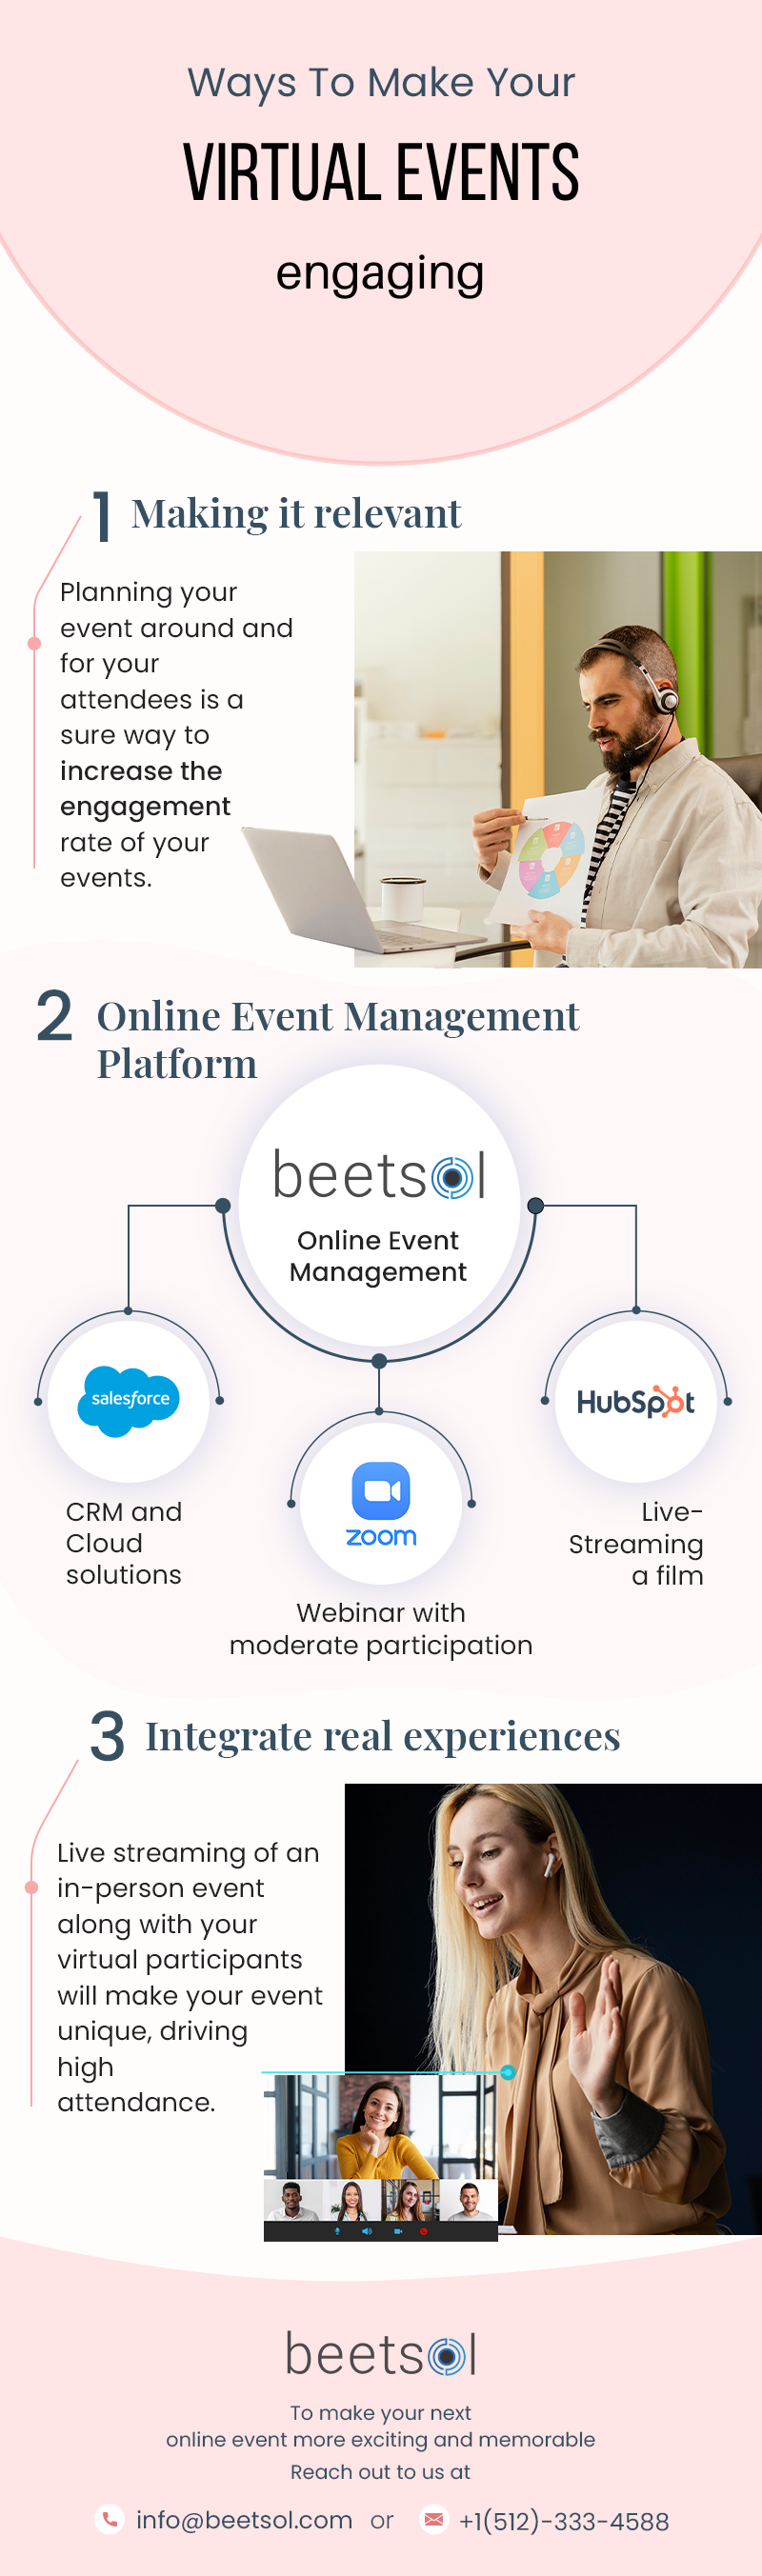 Best ways of making your virtual events engaging